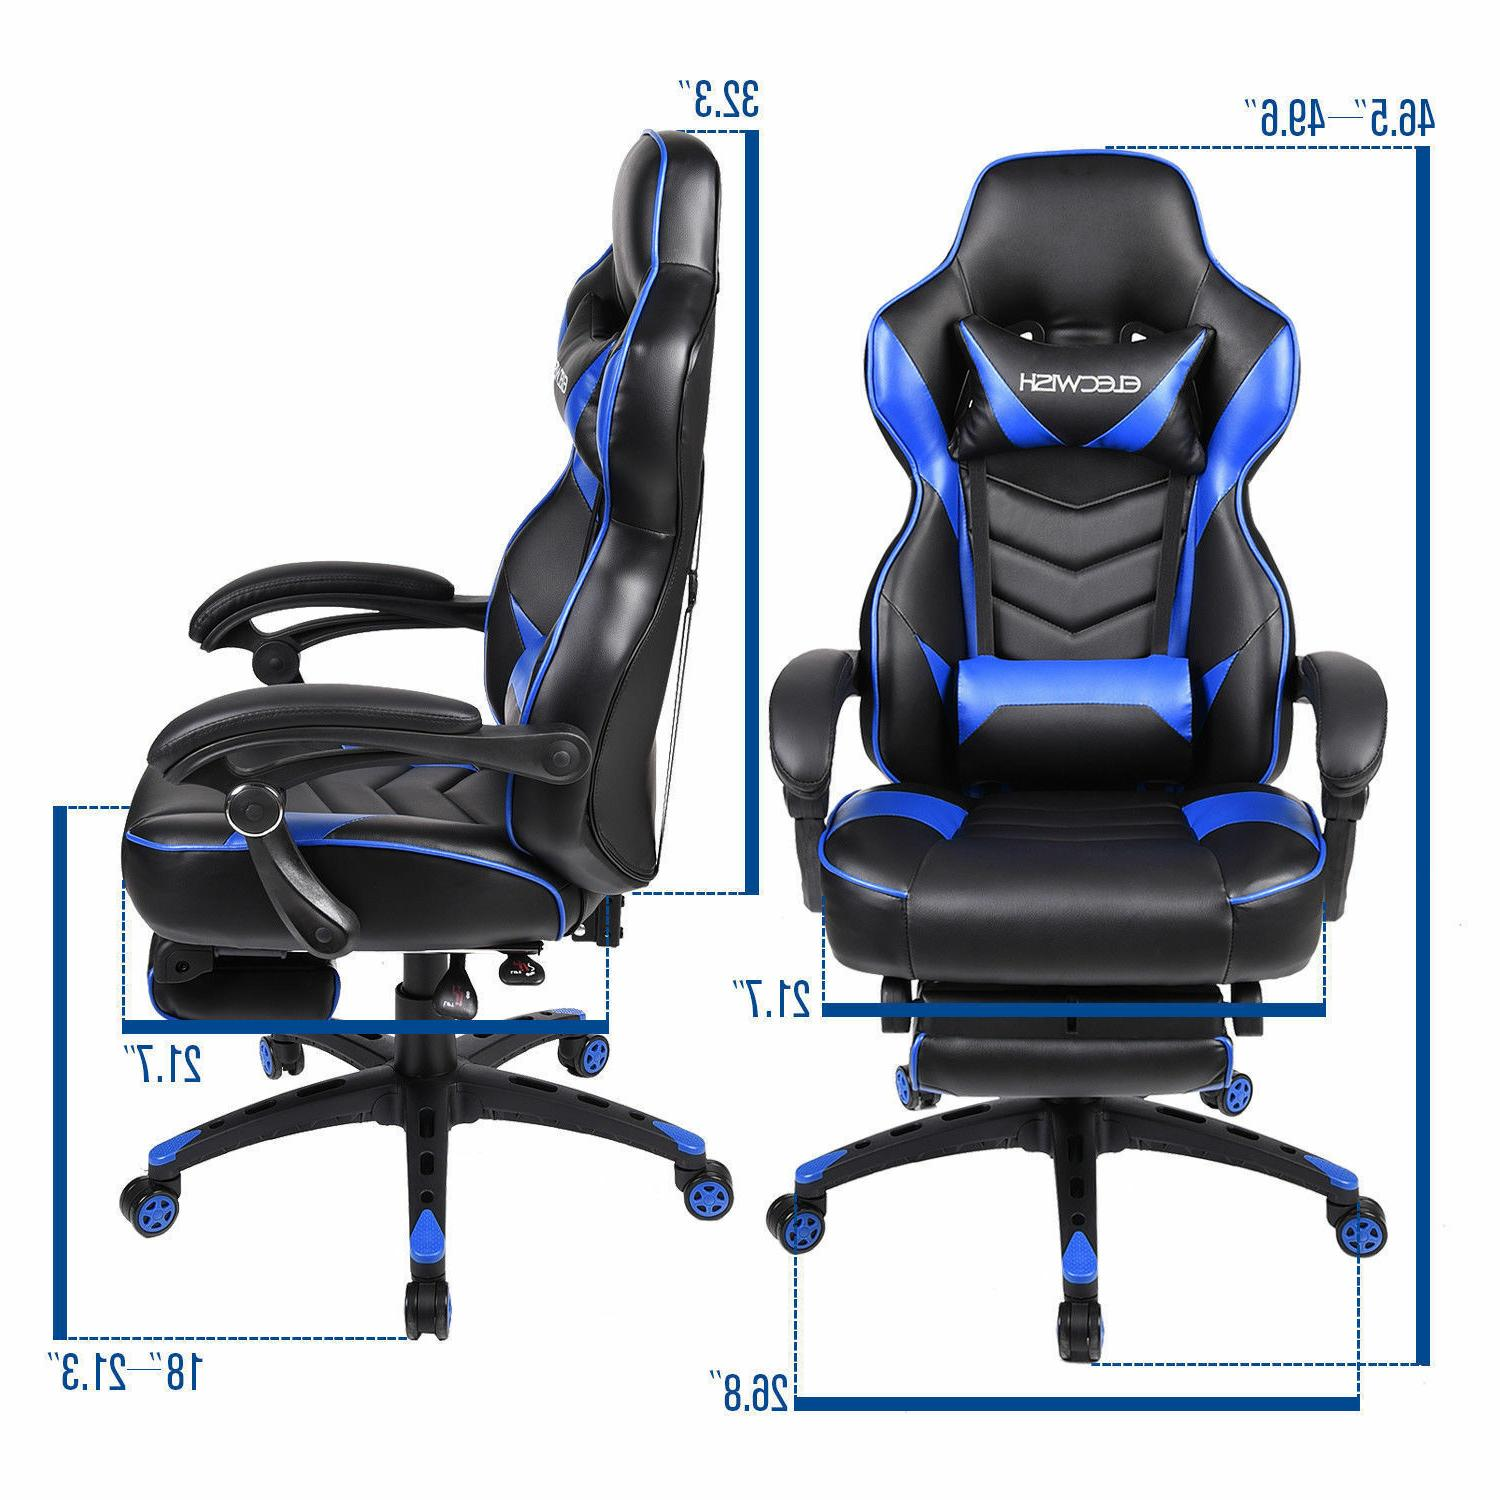 ELECWISH Office Gaming Chair Footrest Racing Recliner Seat